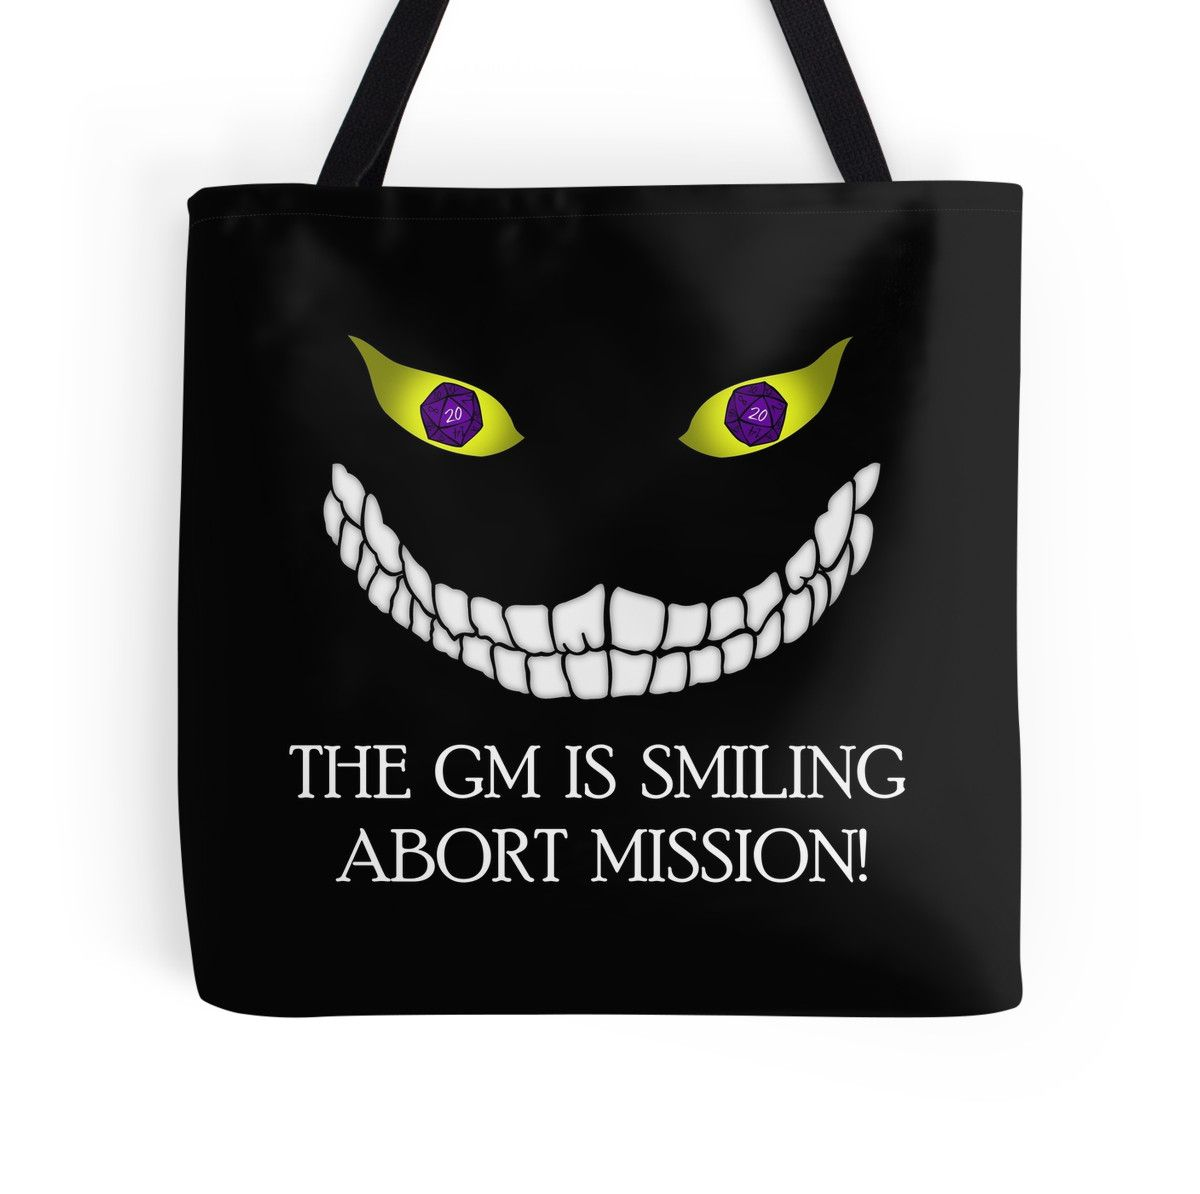 The GM Is Smiling tote bag by GrimDork. Nerd, game, rpg, tabletop